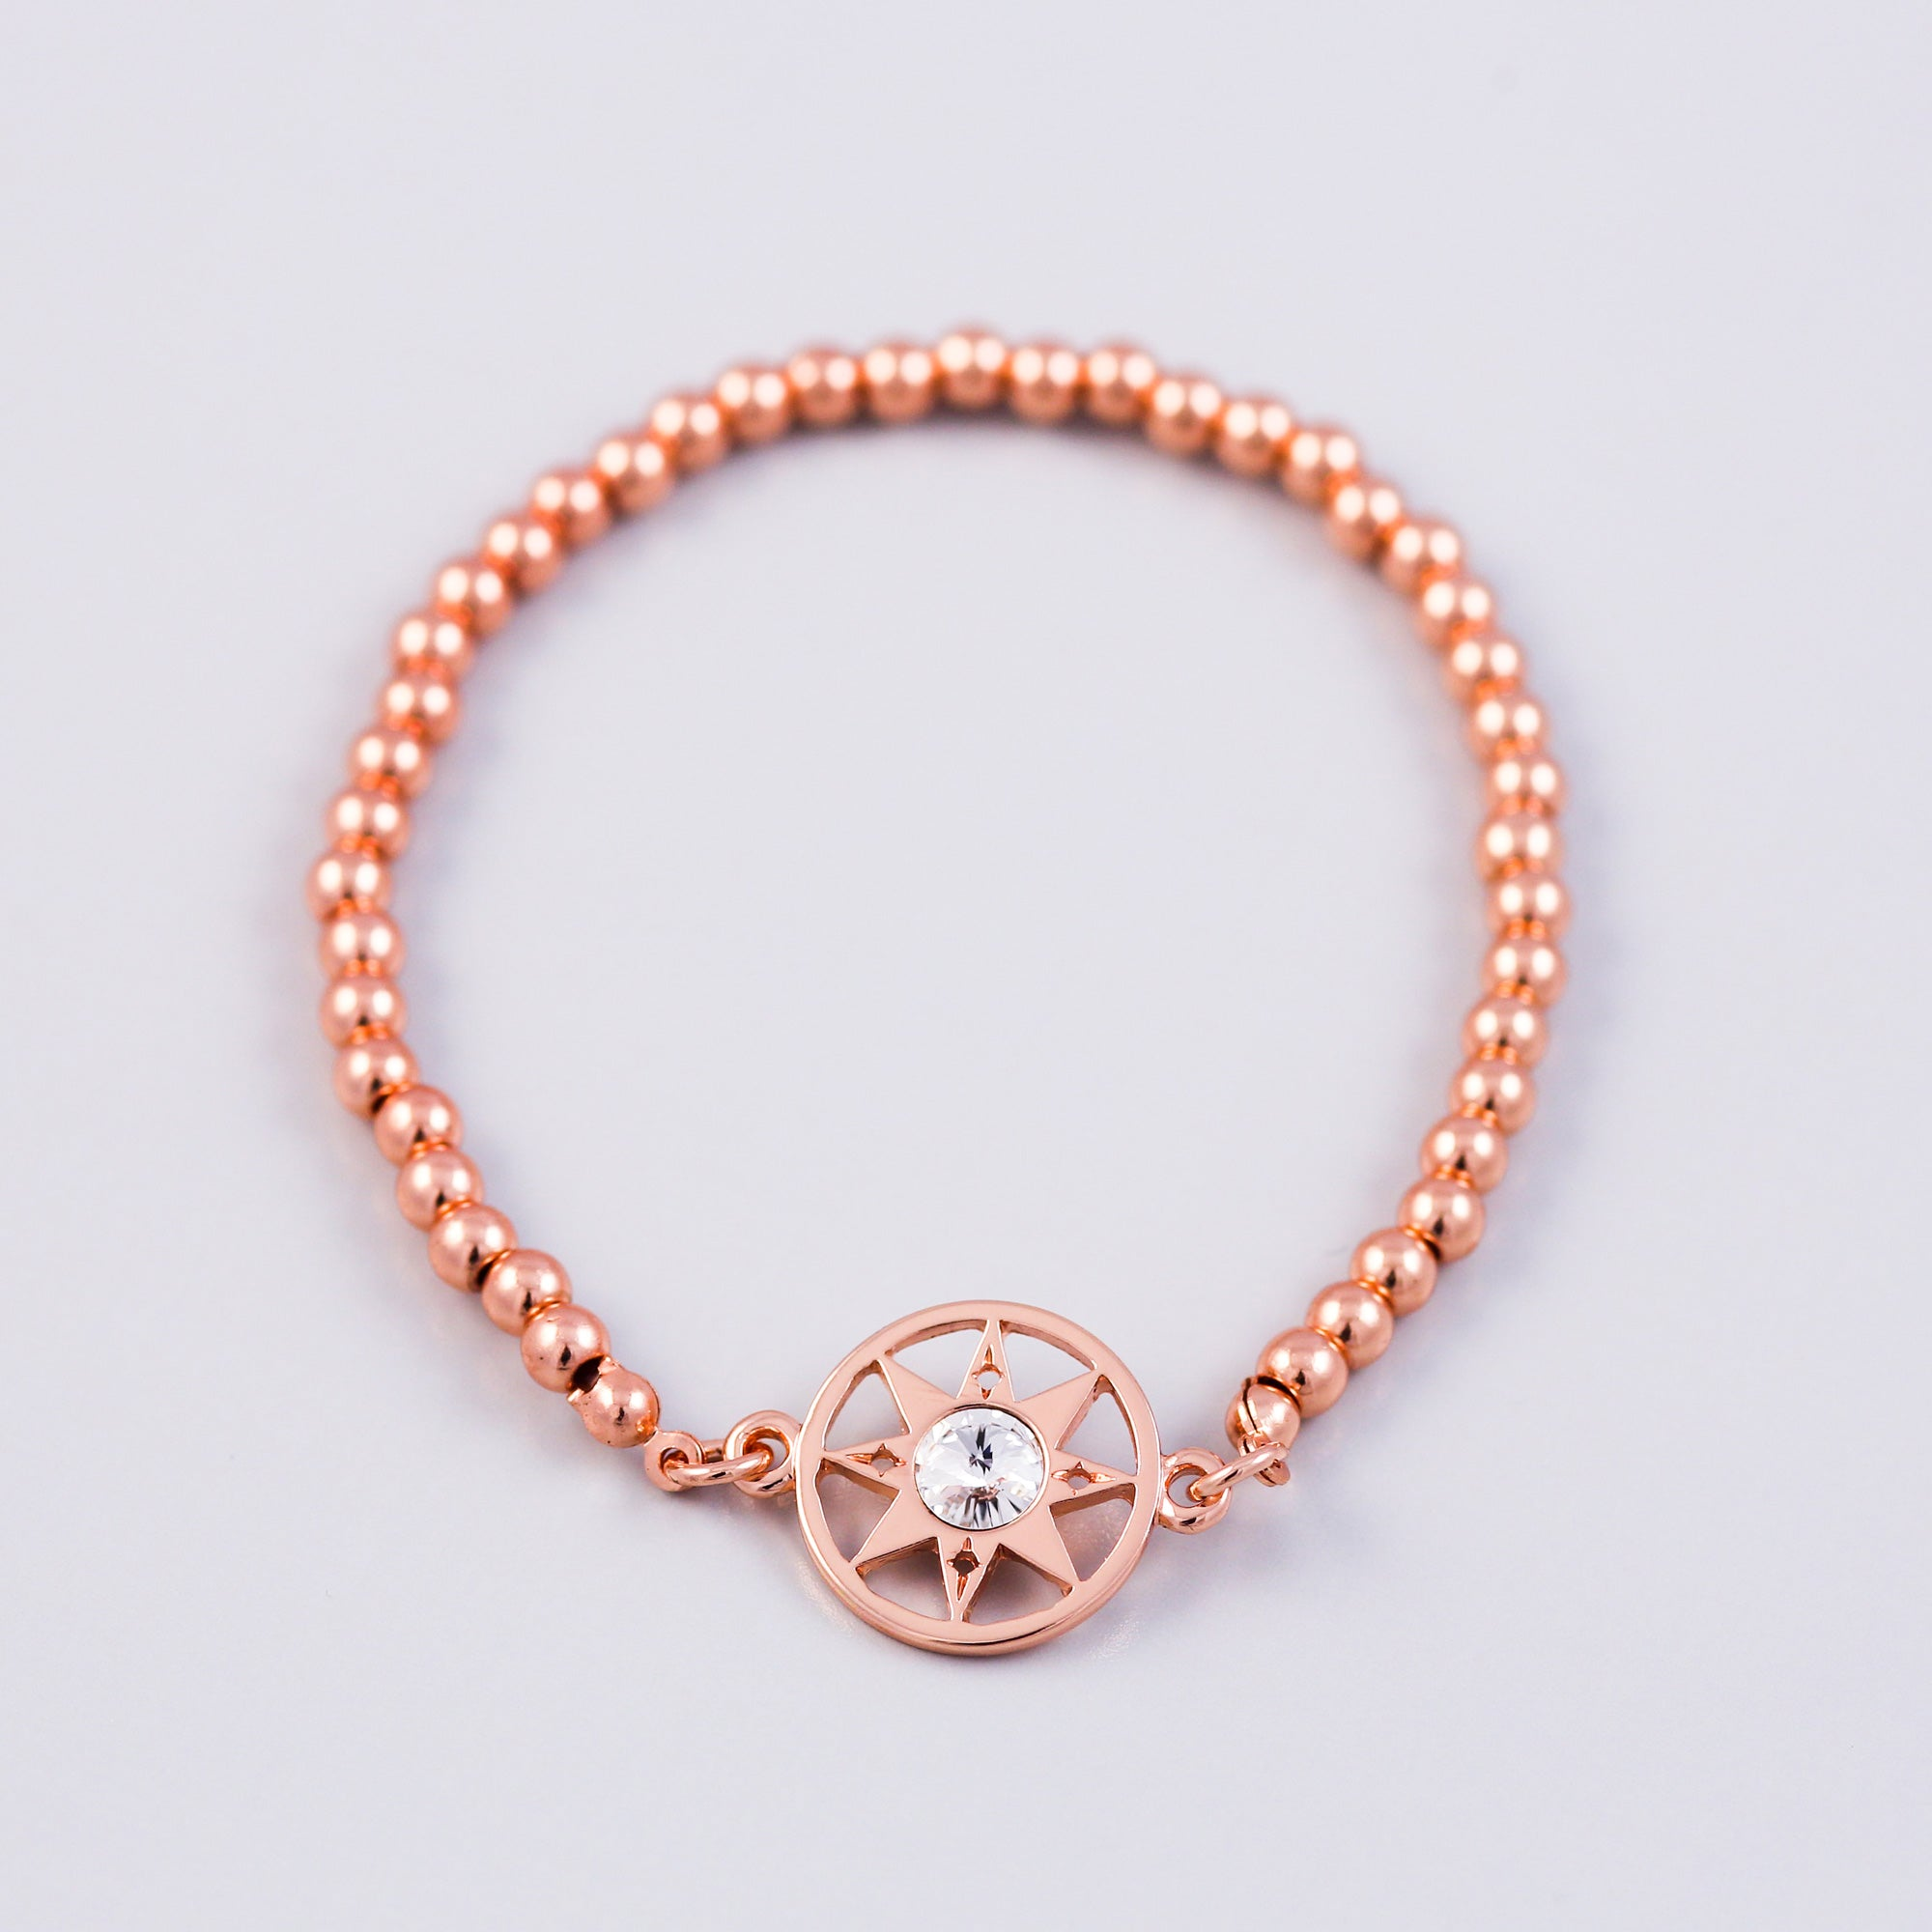 Rose Gold Compass & Metallic Bead Bridal Bracelet